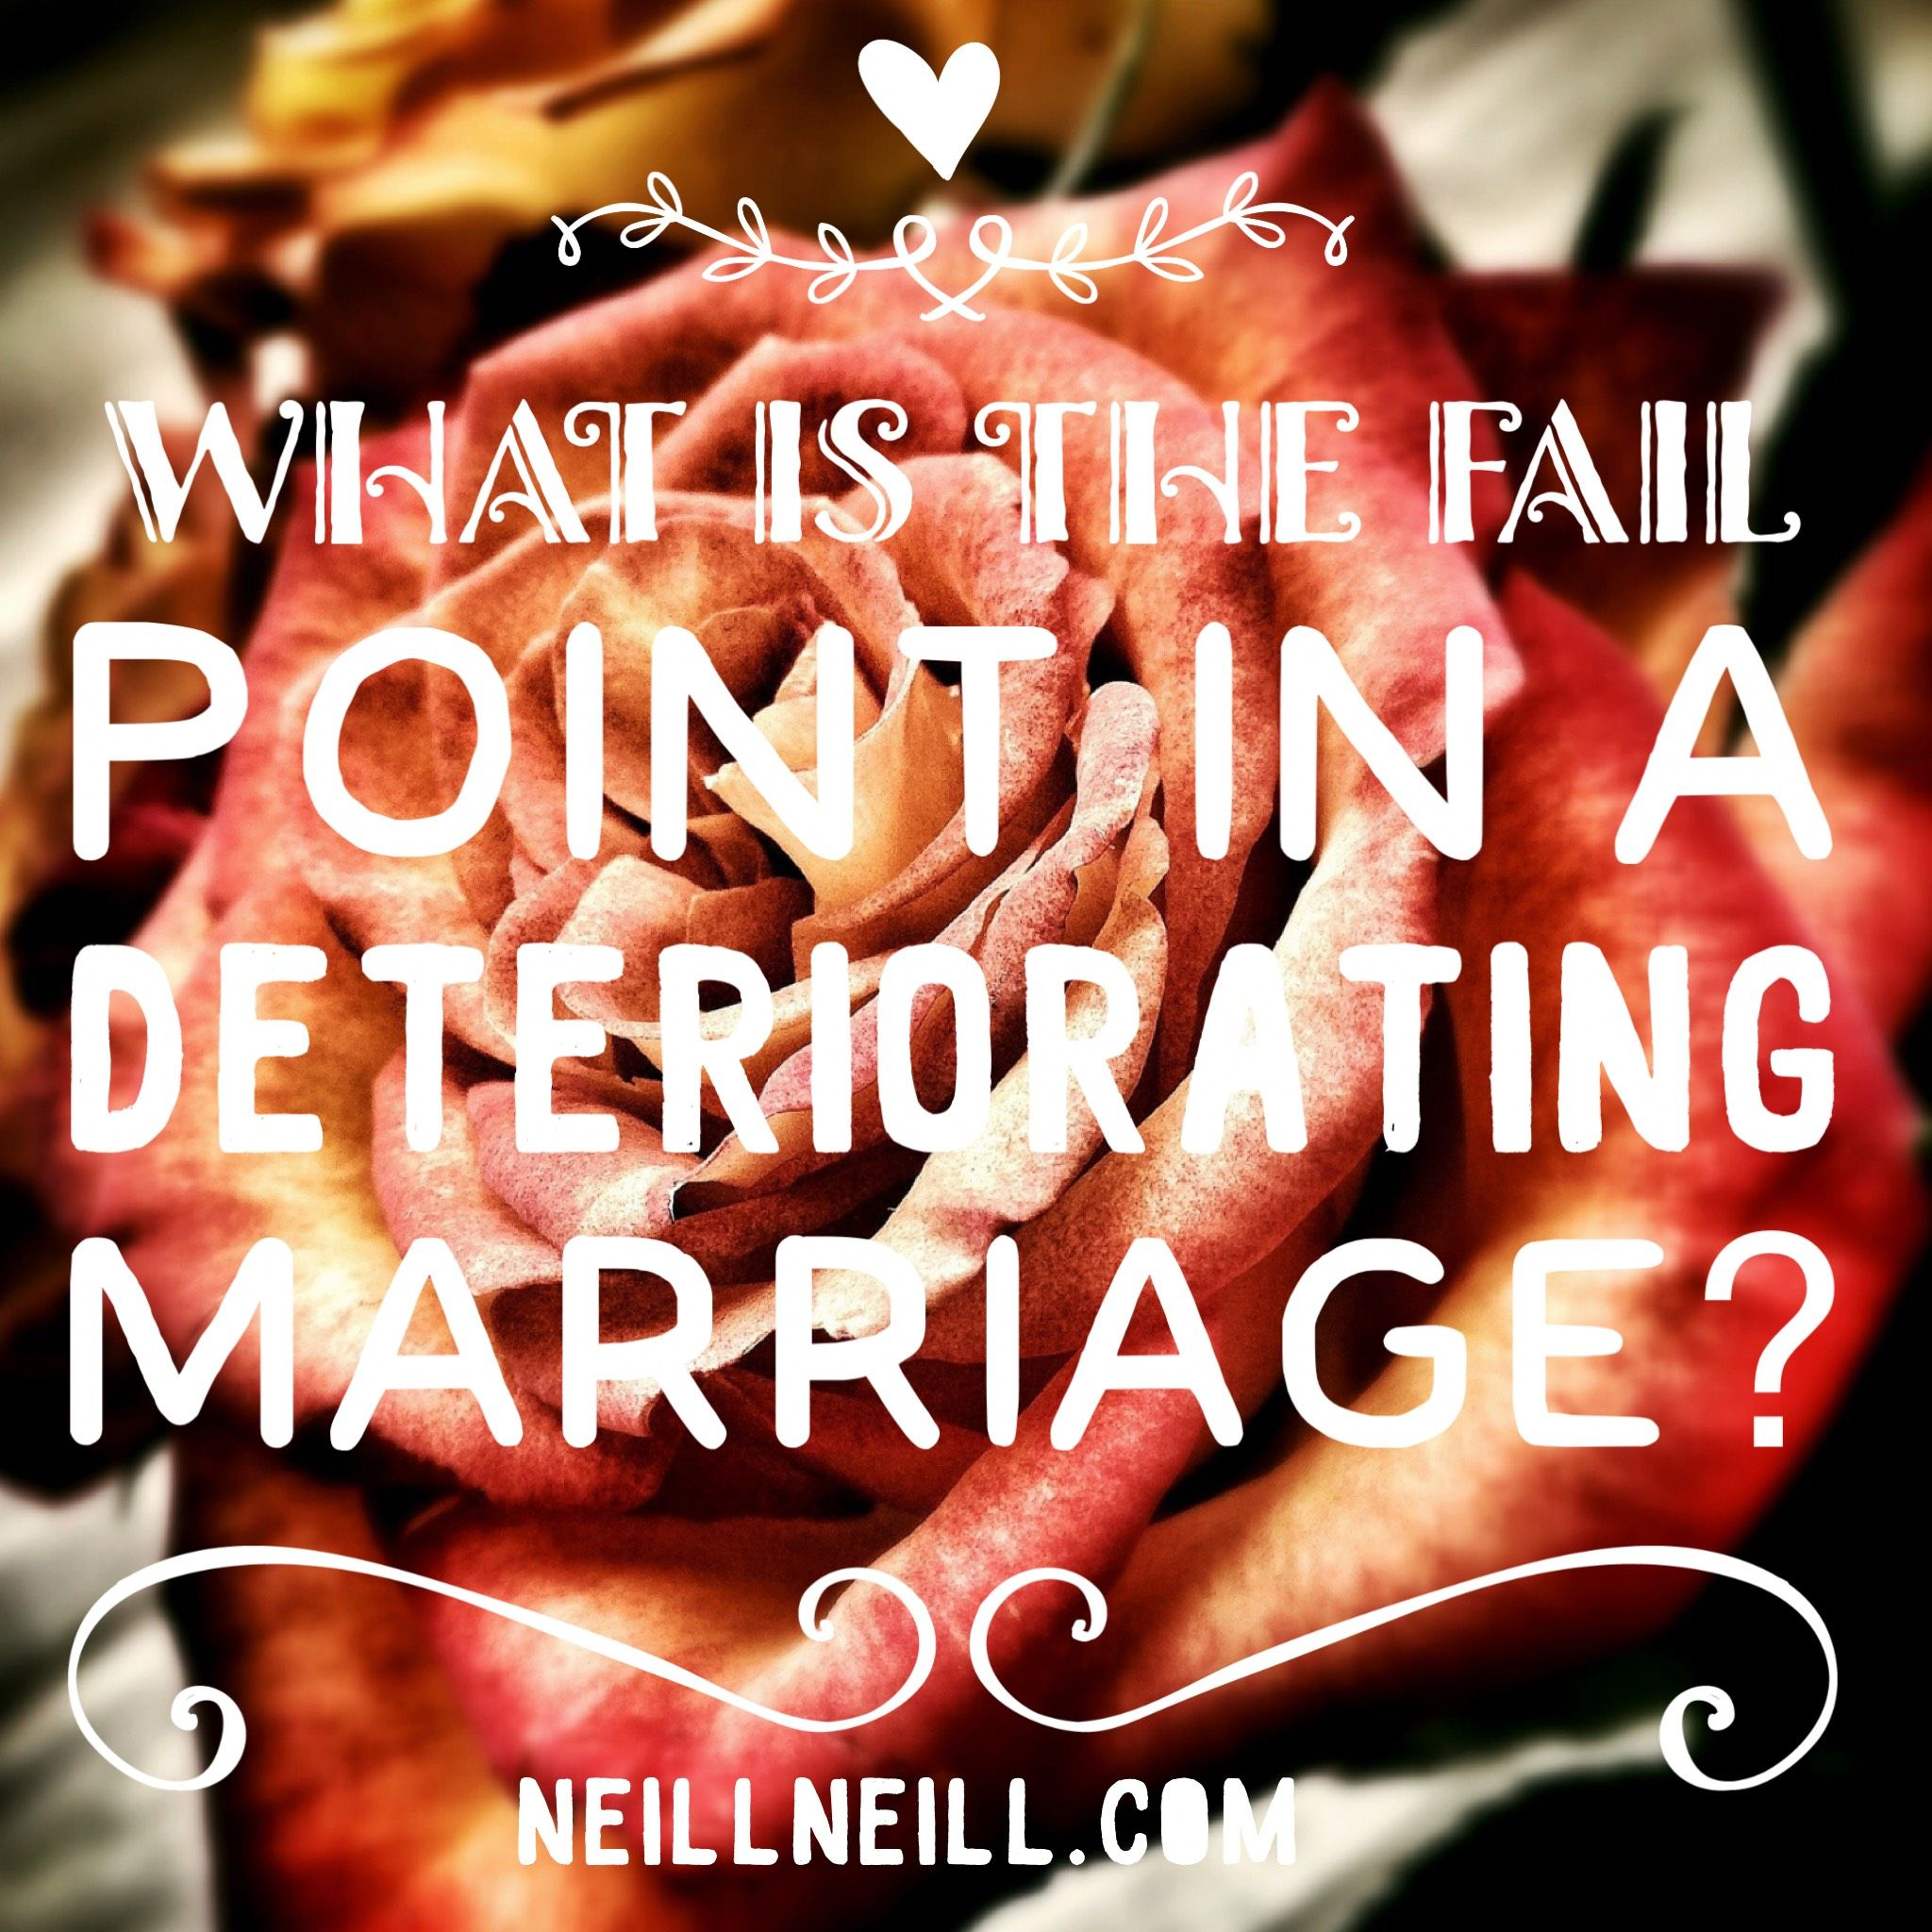 What is the fail point in a deteriorating marriage?